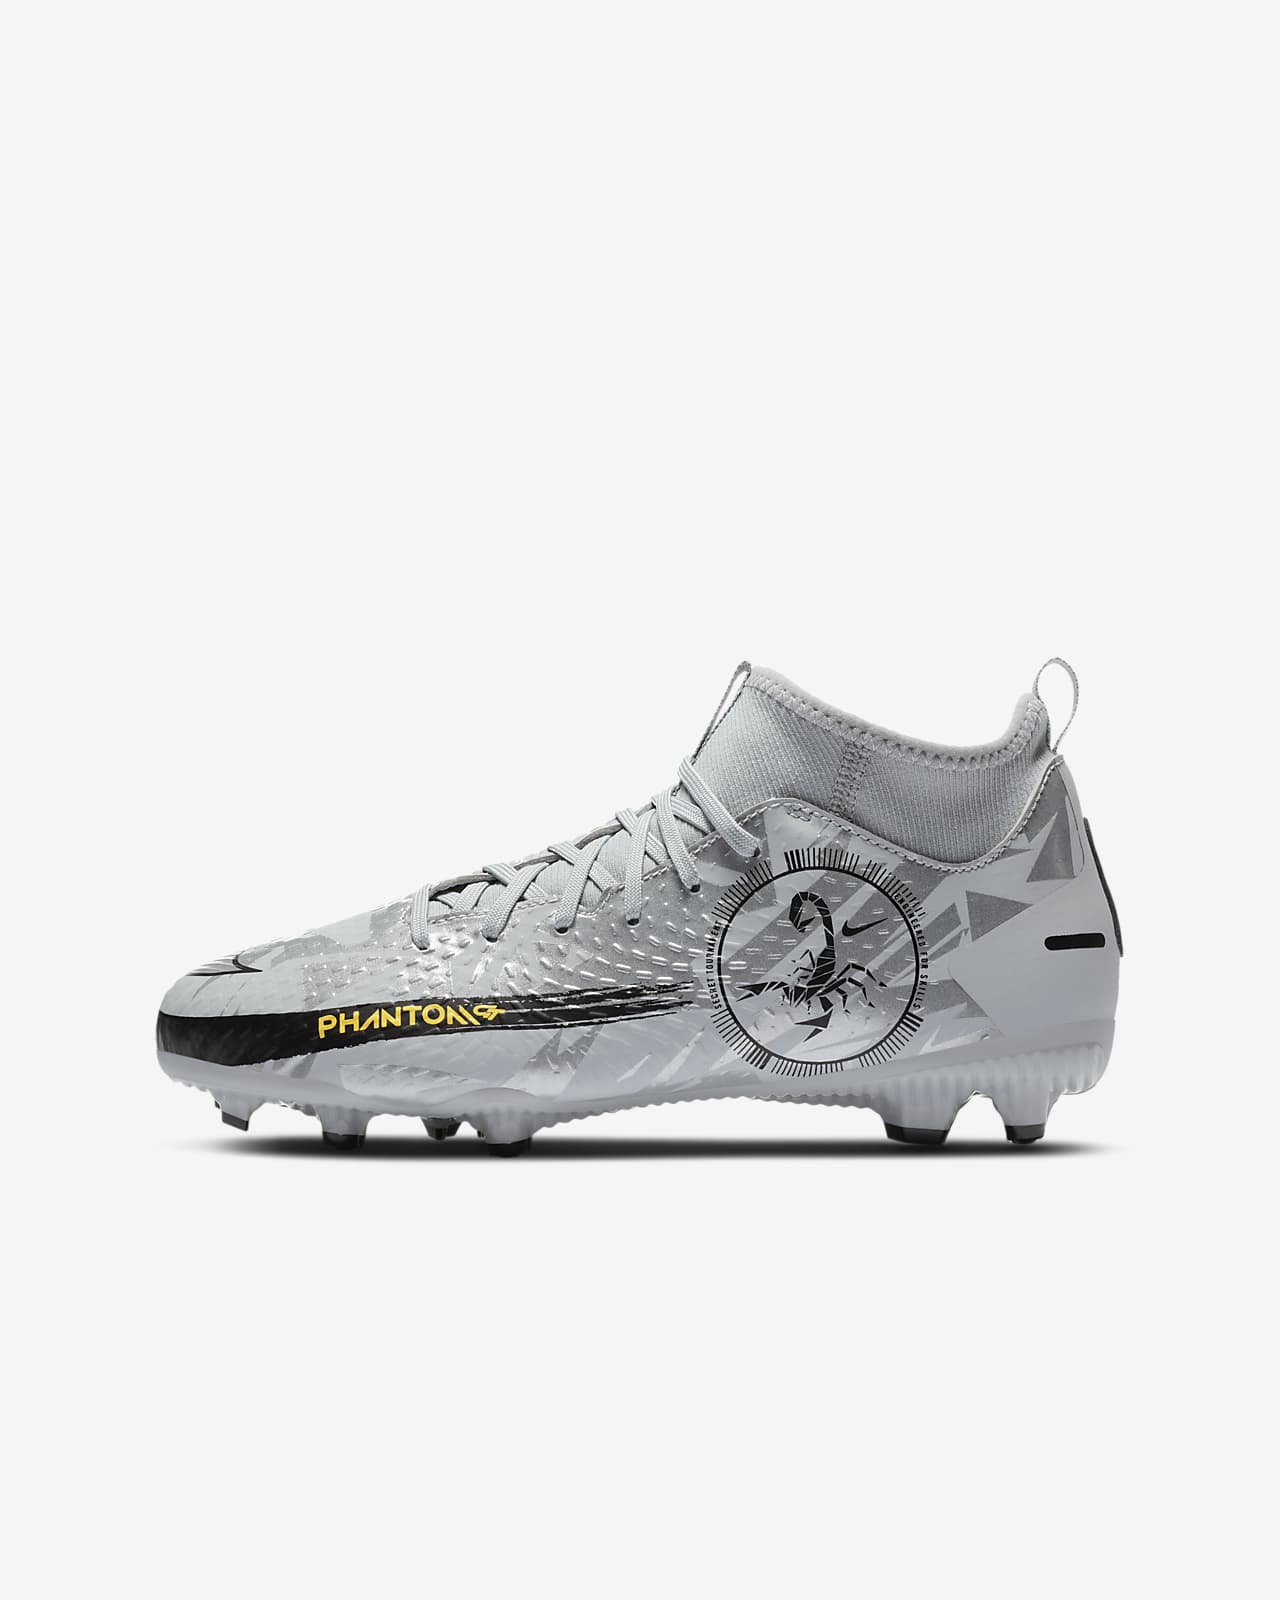 Scarpa da calcio multiterreno Nike Jr. Phantom Scorpion Academy Dynamic Fit MG - Bambini/Ragazzi